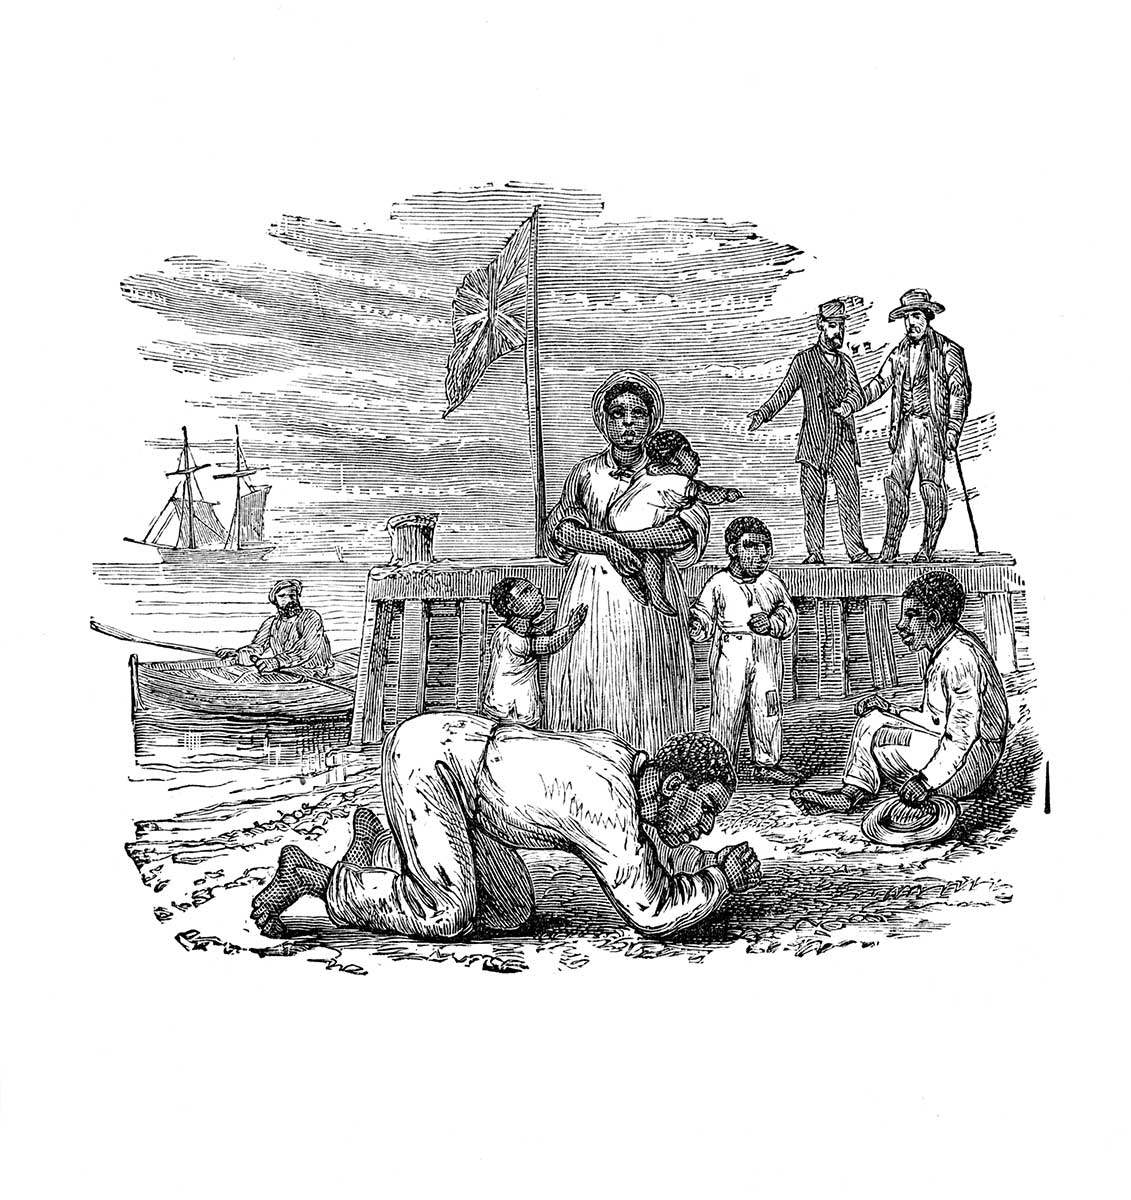 The Henson family arrives on the Canadian shore the morning of October 28, 1830. Source: Uncle Tom's Story of His Life, An Autobiography of the Rev. Josiah Henson.